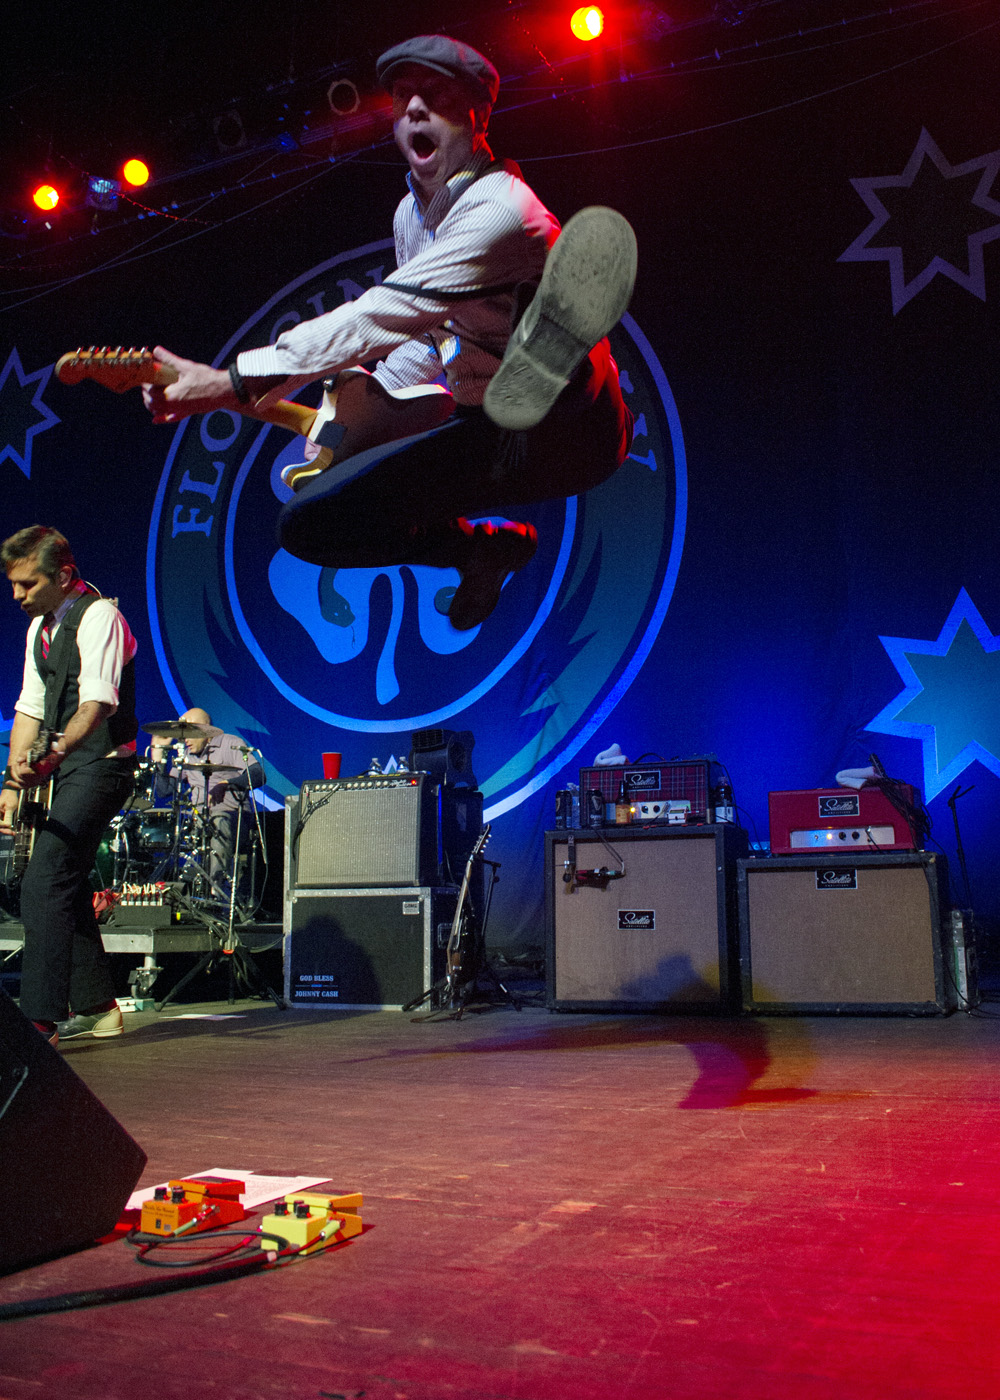 floggingmolly2.jpg